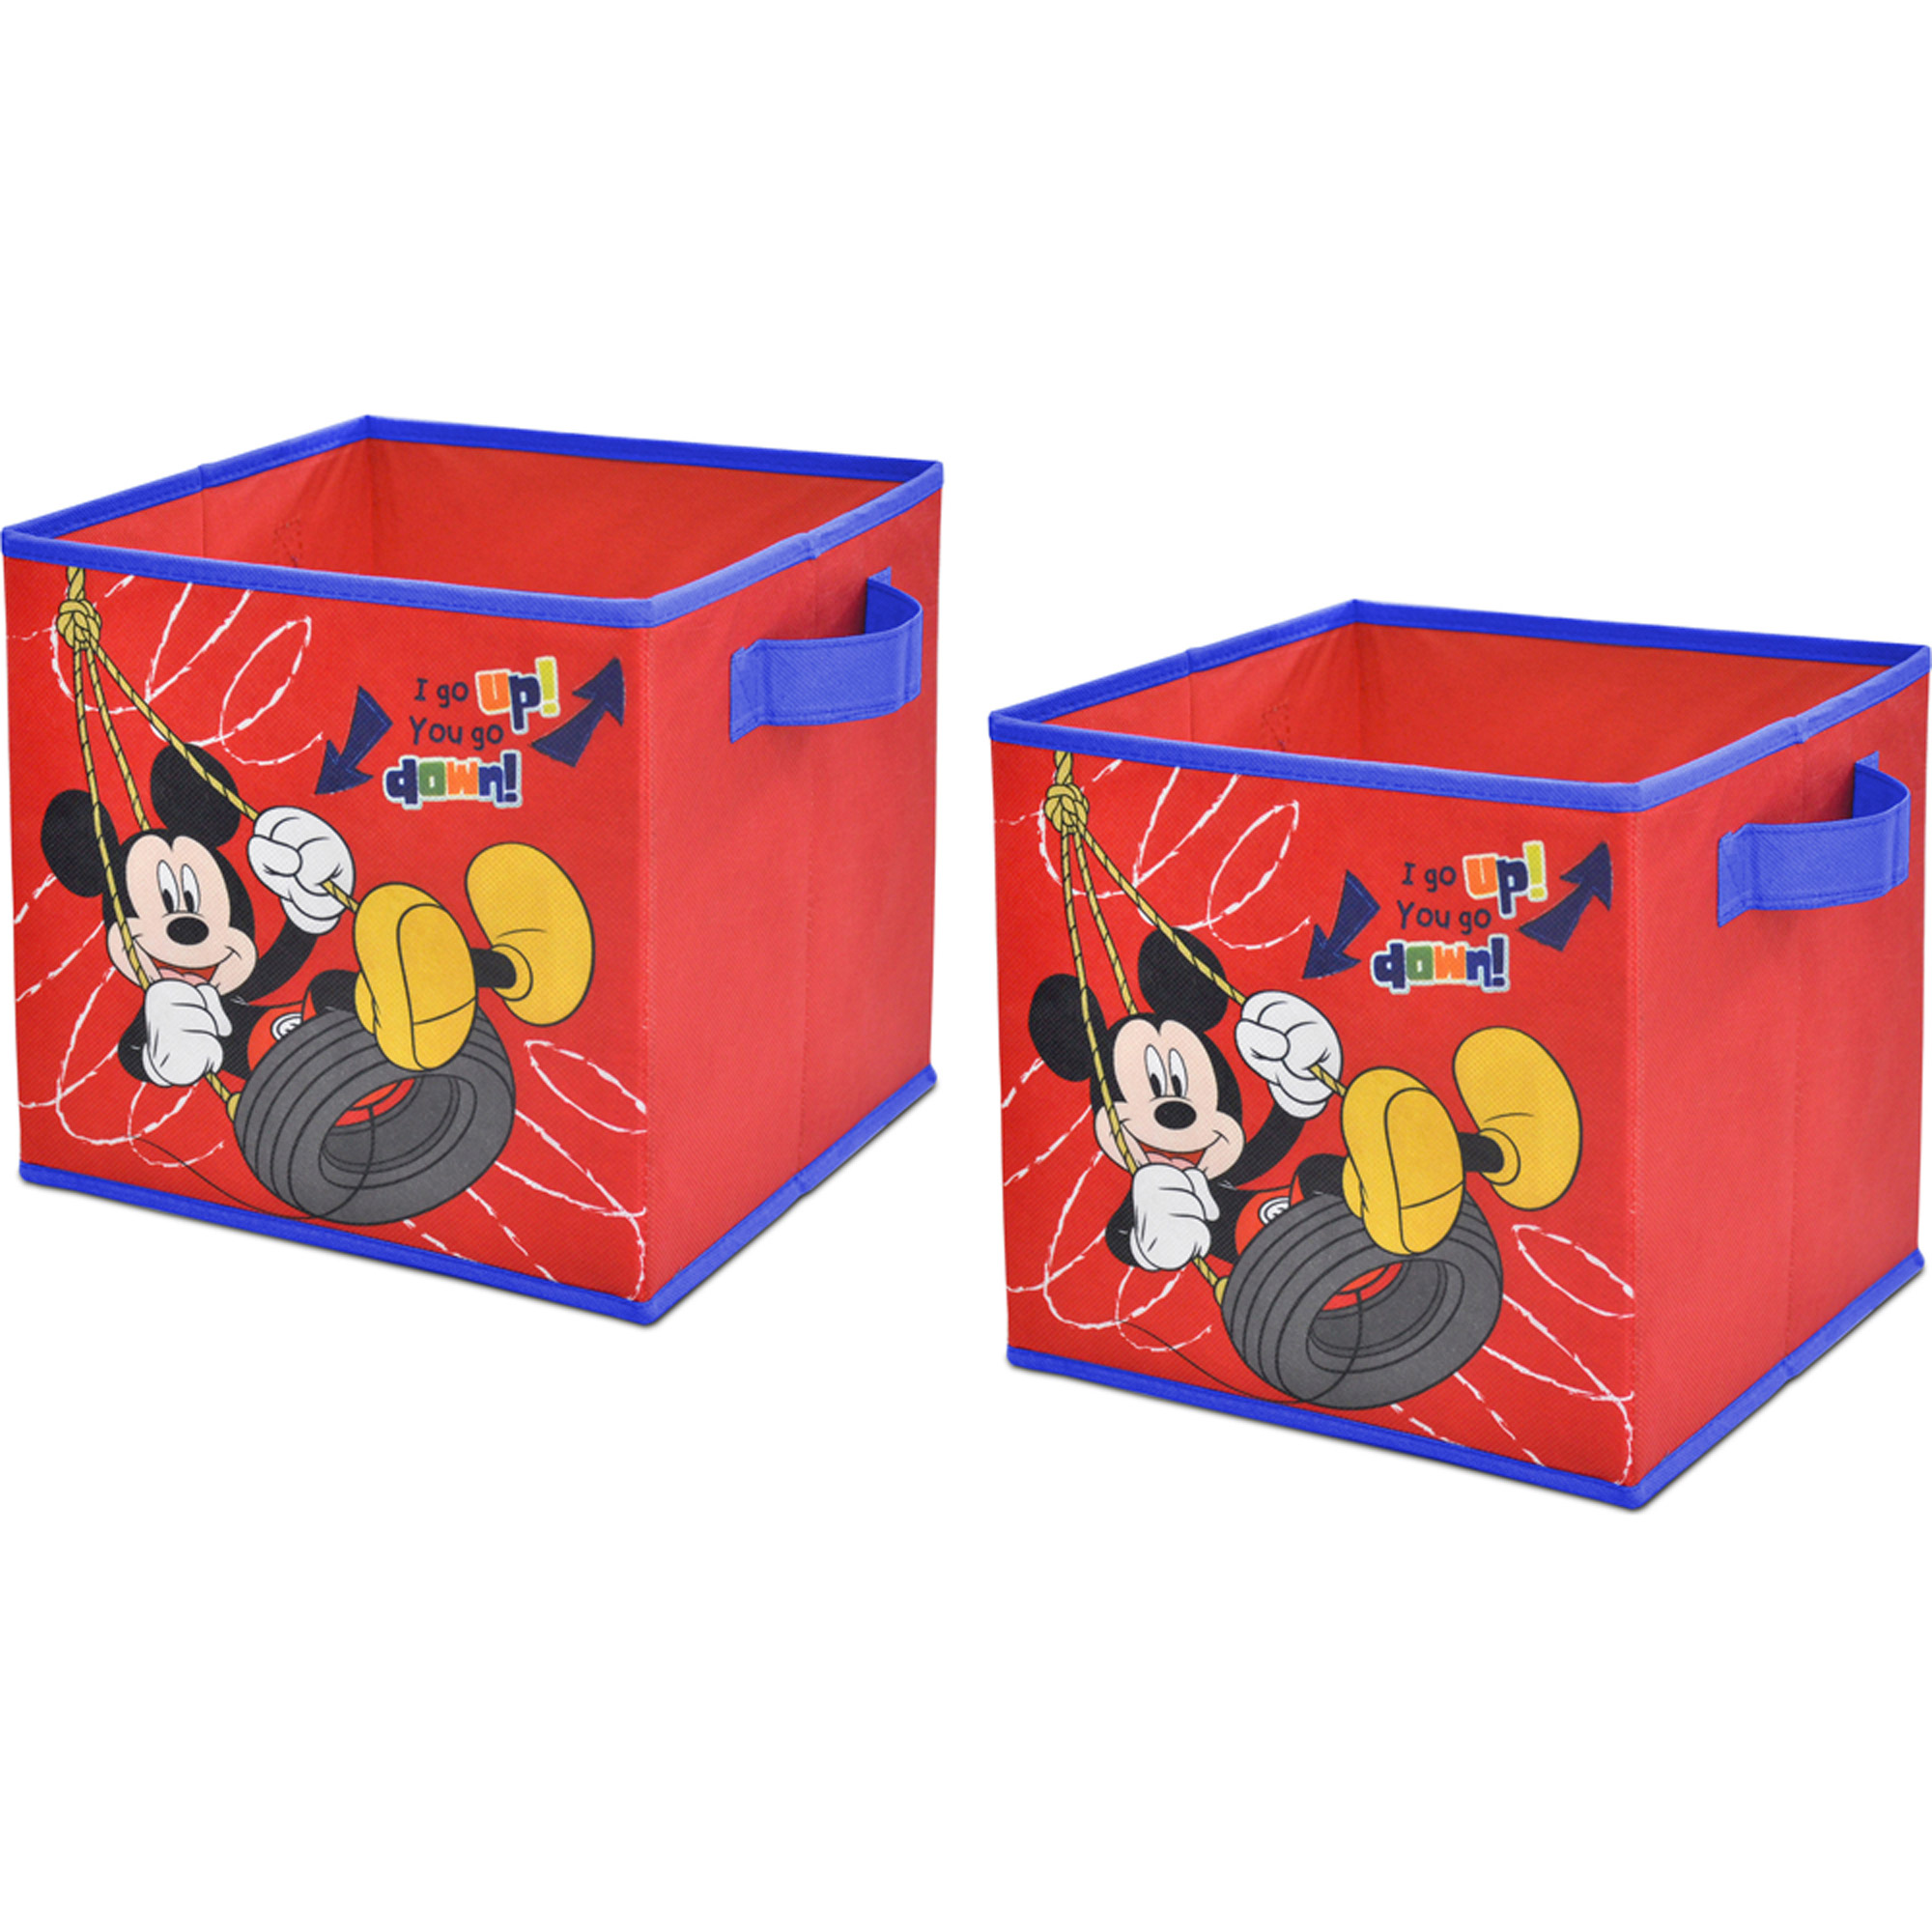 Disney Mickey Mouse 2-Pack Storage Cube